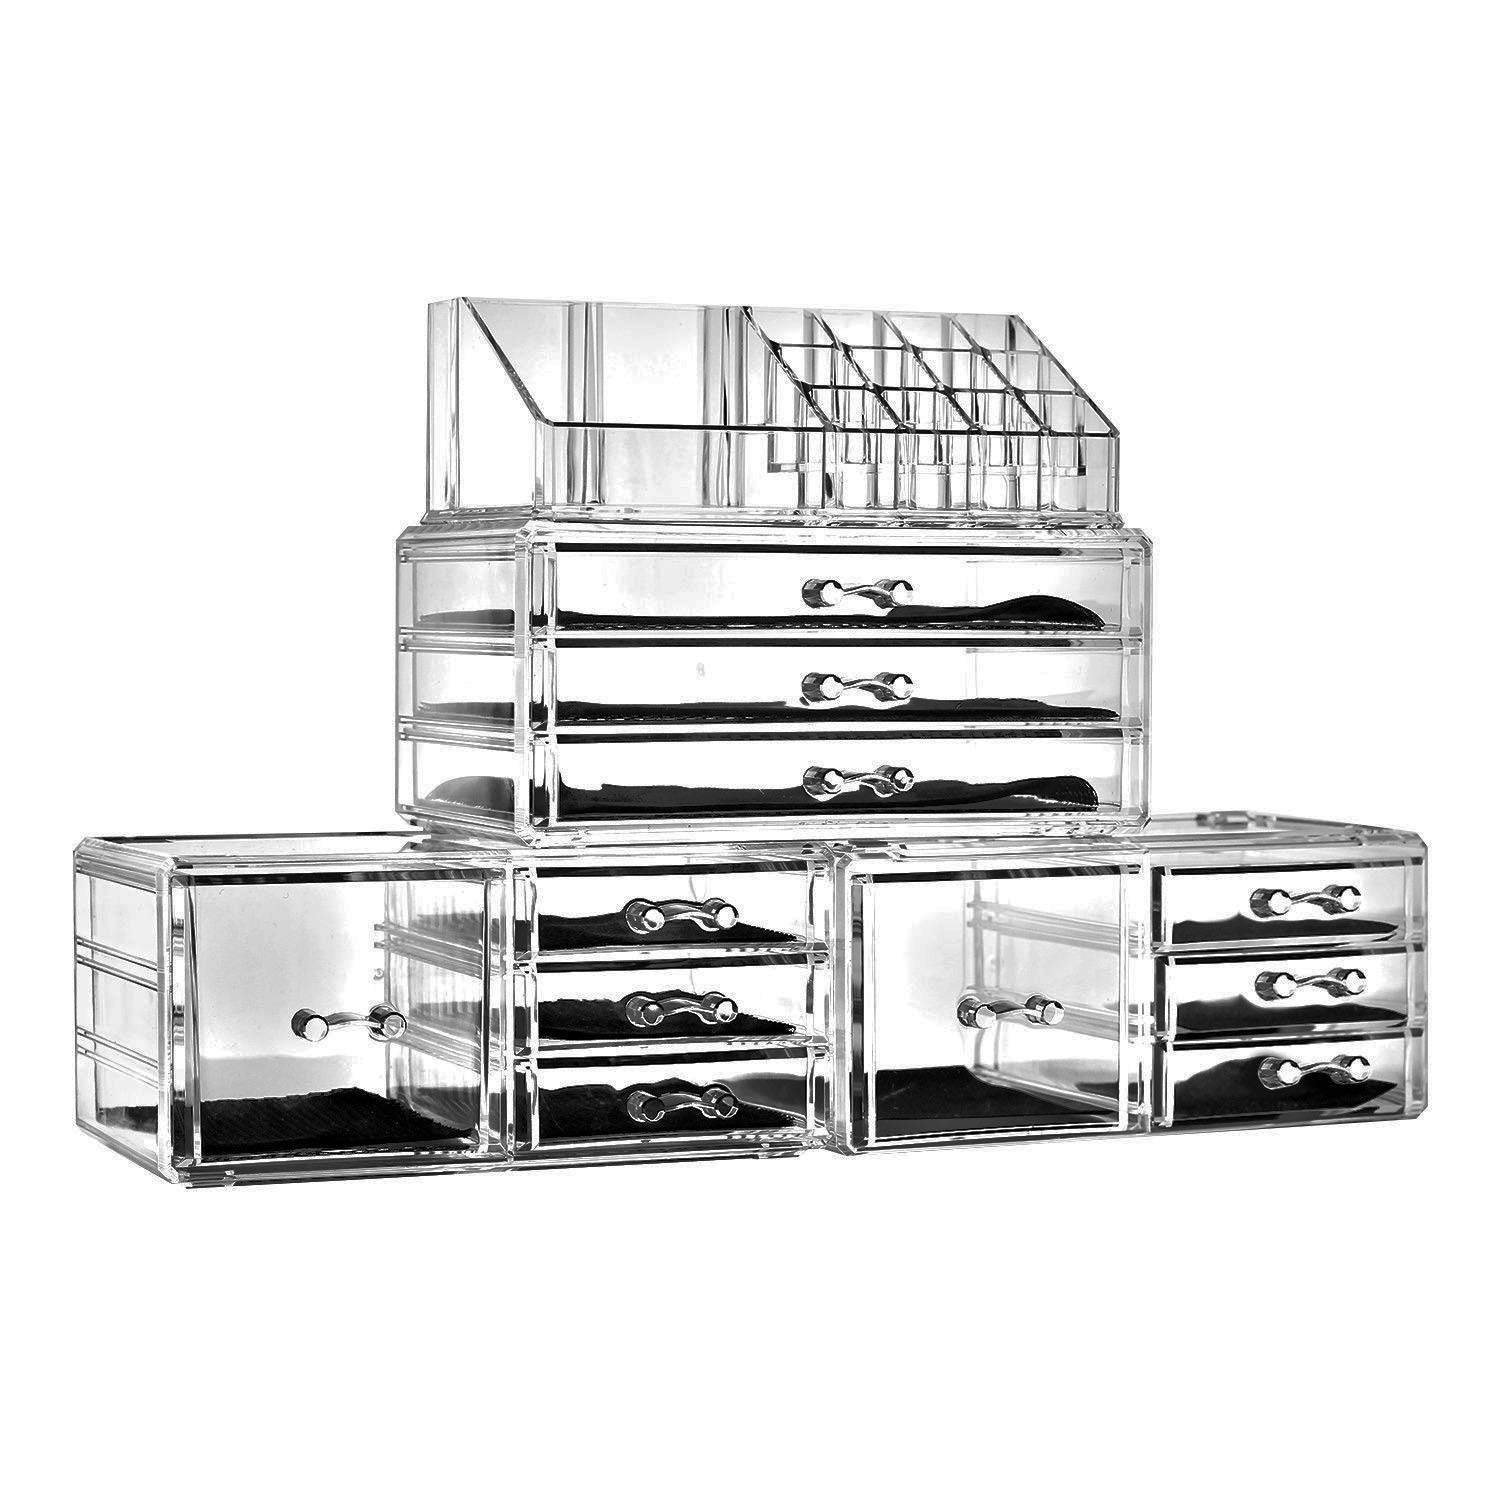 SF-1122-10 4Pcs / Set Plastic Cosmetics Storage Rack Transparent by Tenozek (Image #2)